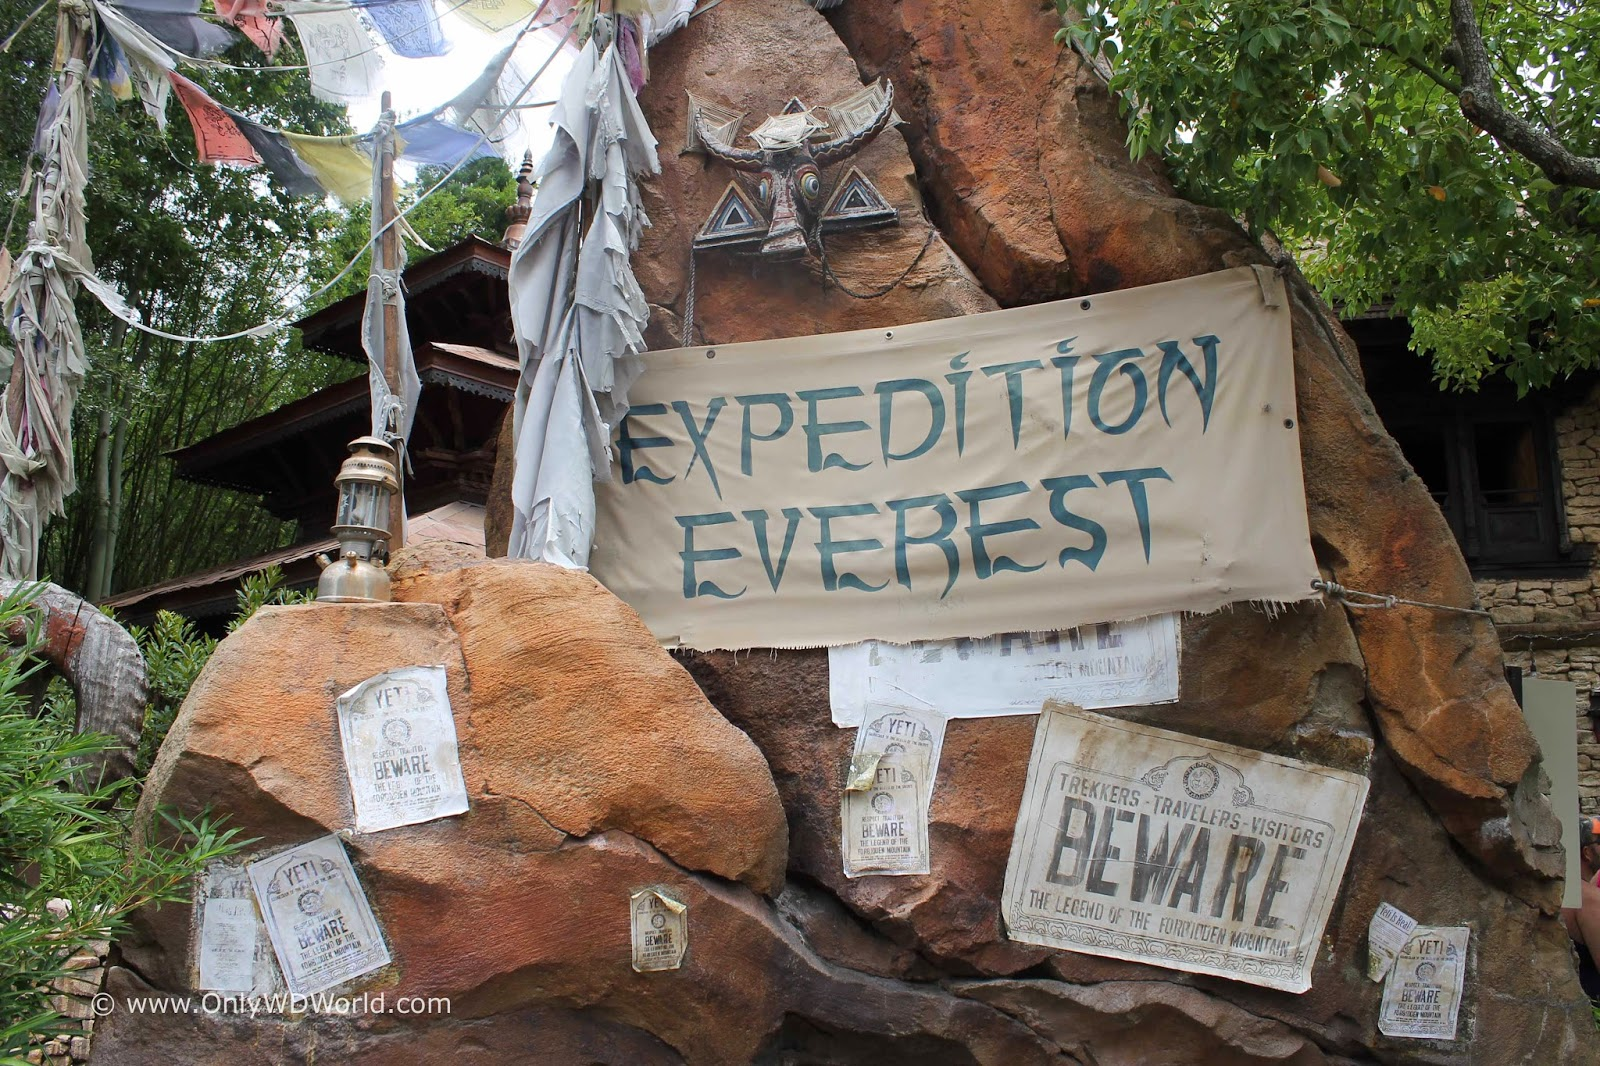 disneys expedition everest essay Looking for the infamous valentine essay  which would not explain why the yeti is able to climb up disney's expedition everest attraction on two legs while.